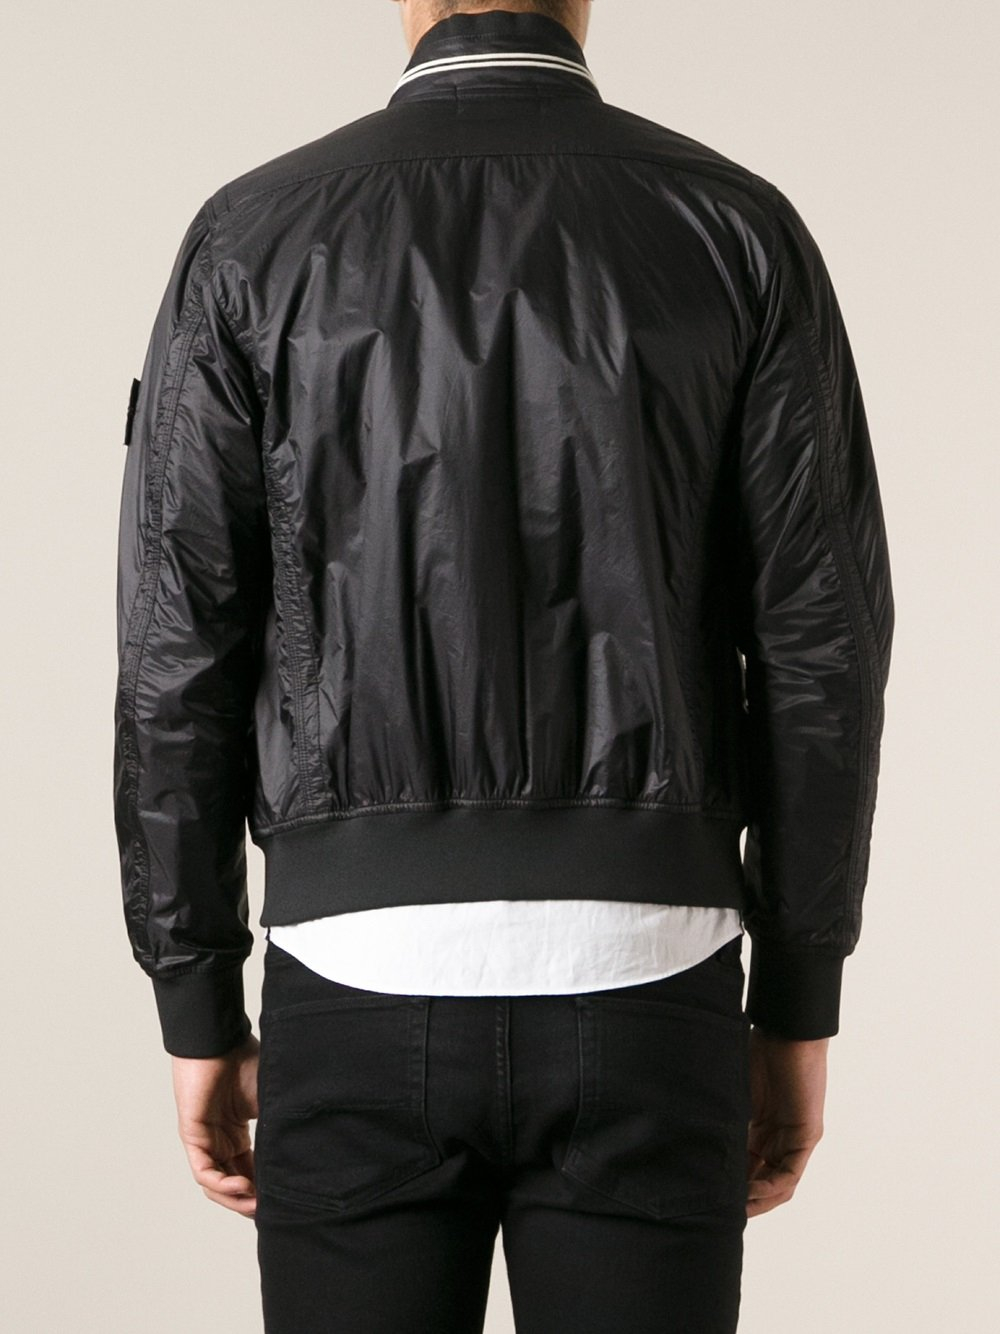 Stone Island Bomber Jacket in Black for Men - Lyst